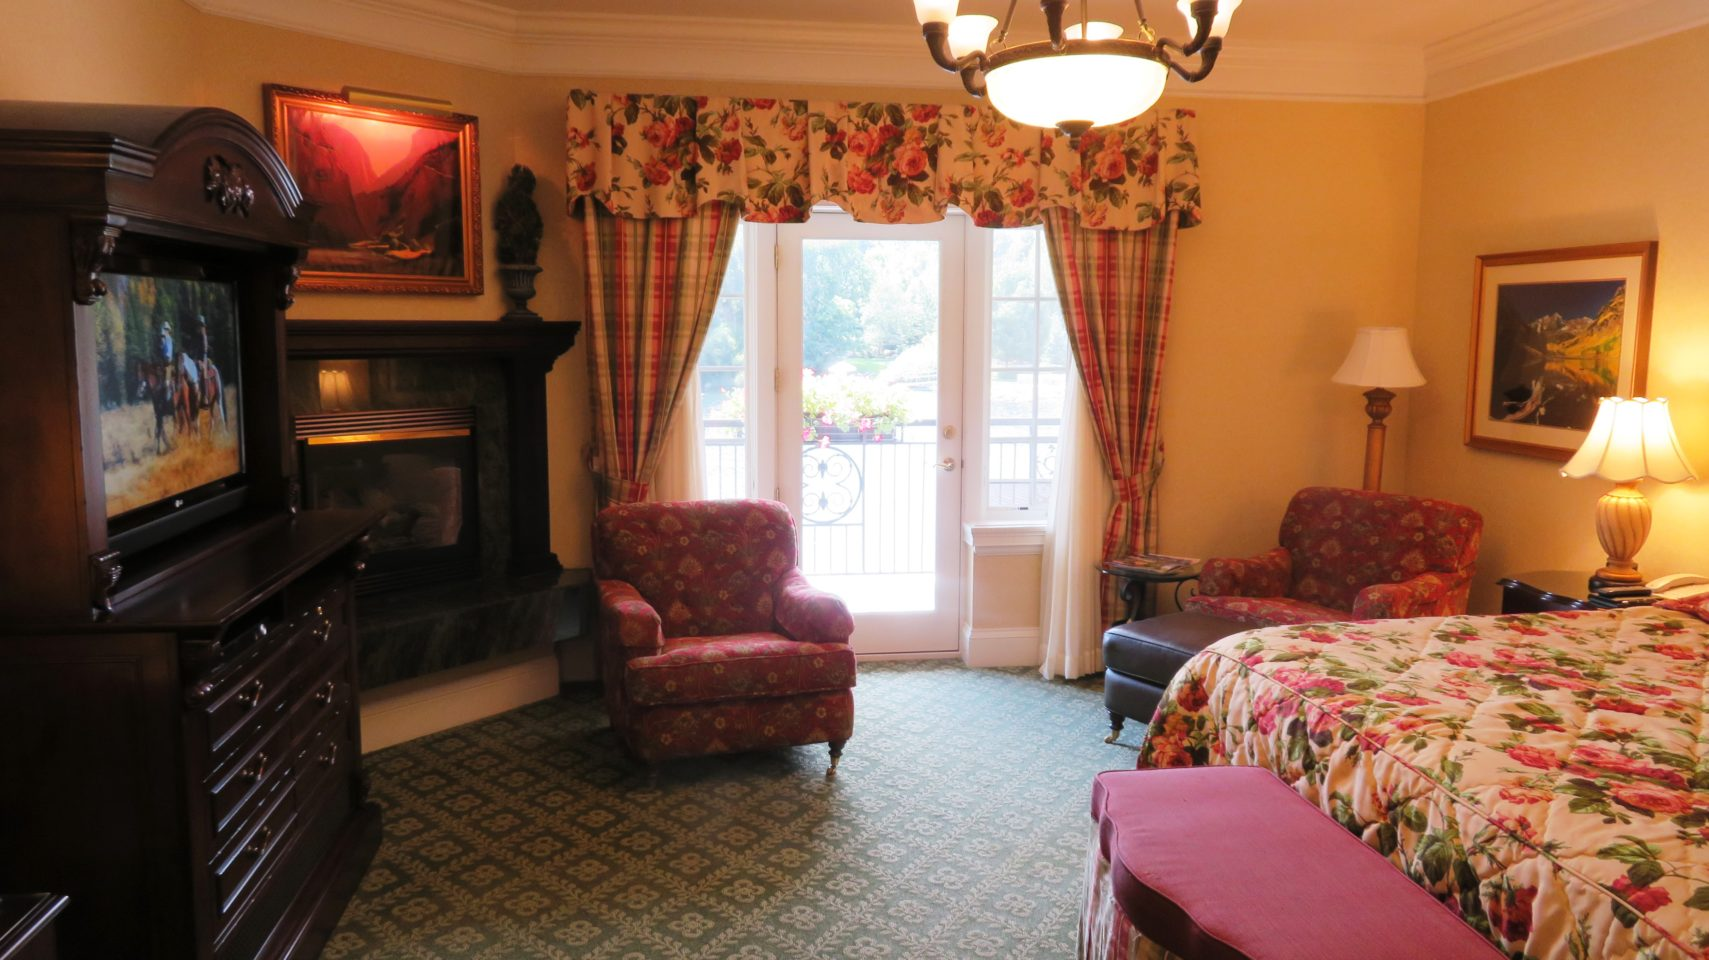 The main room of our Lakeside Suite at The Broadmoor